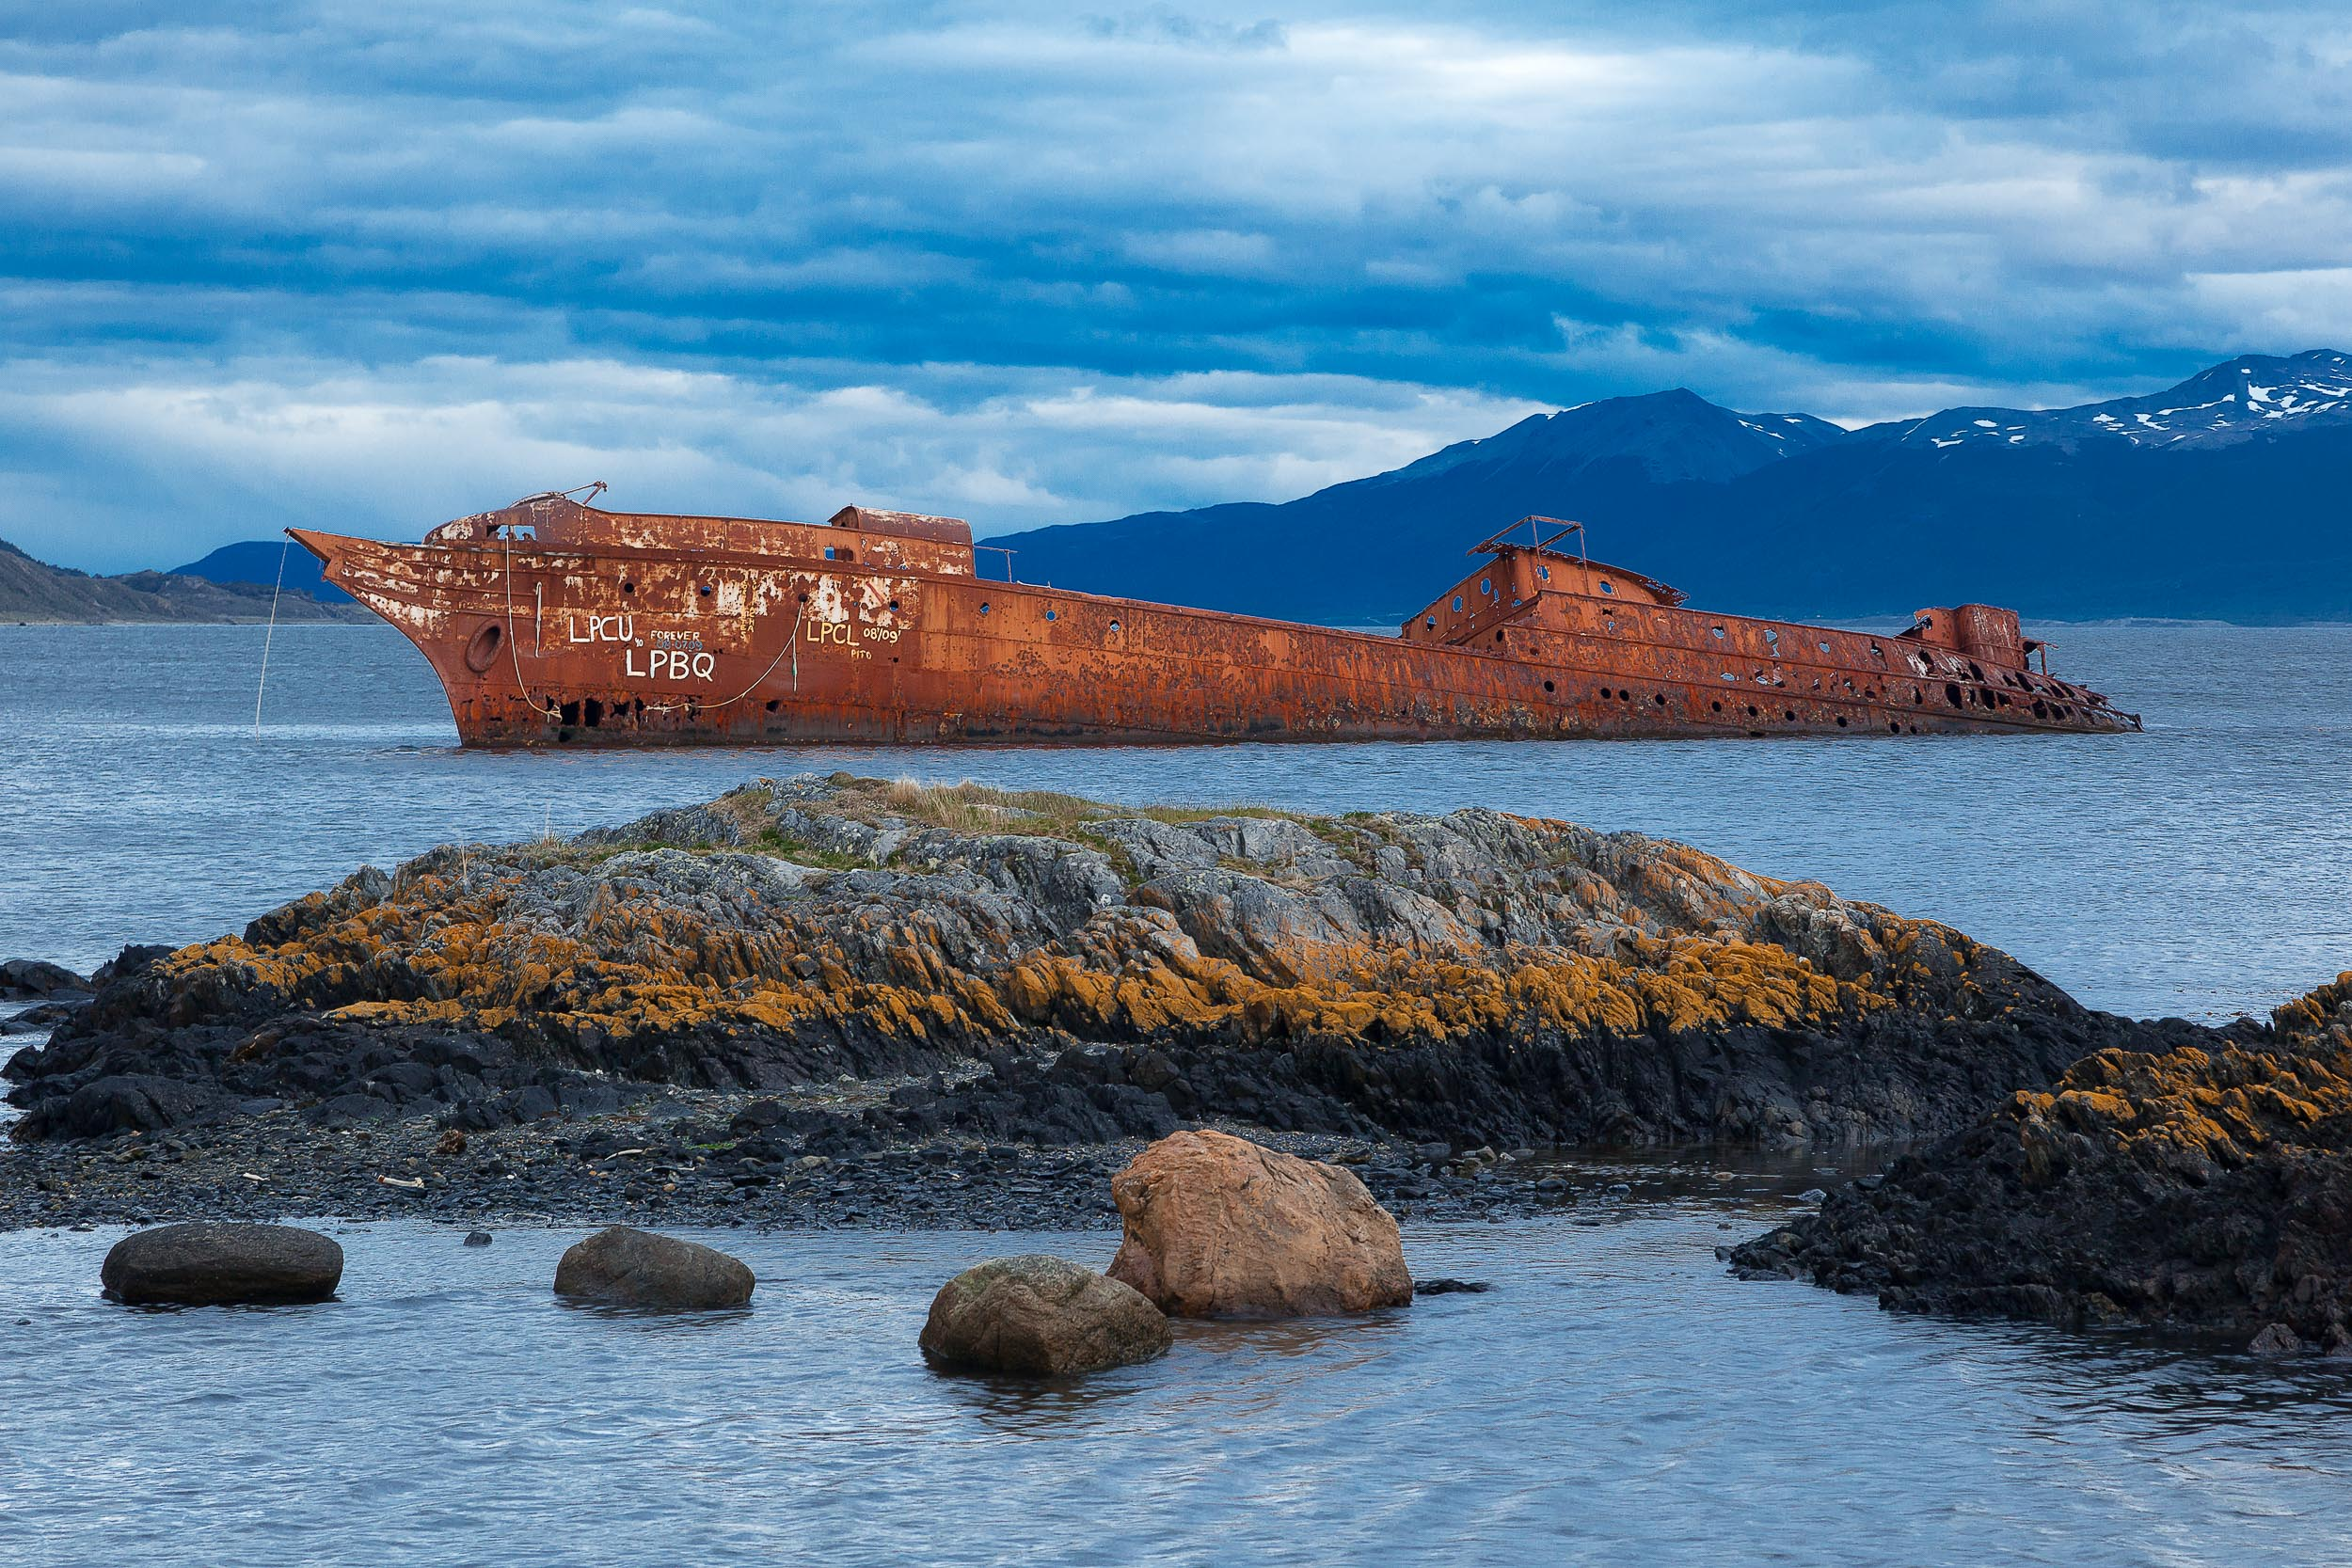 A ship, now no more than a    rusting hulk   , lies in a bay near the city of    Ushuaia    in the far south of    Argentina   . The    orange color of the ship    is illuminated by the gentle sunlight and is a striking contrast against the predominantly    bluish light    resulting from    gathering storm clouds   .